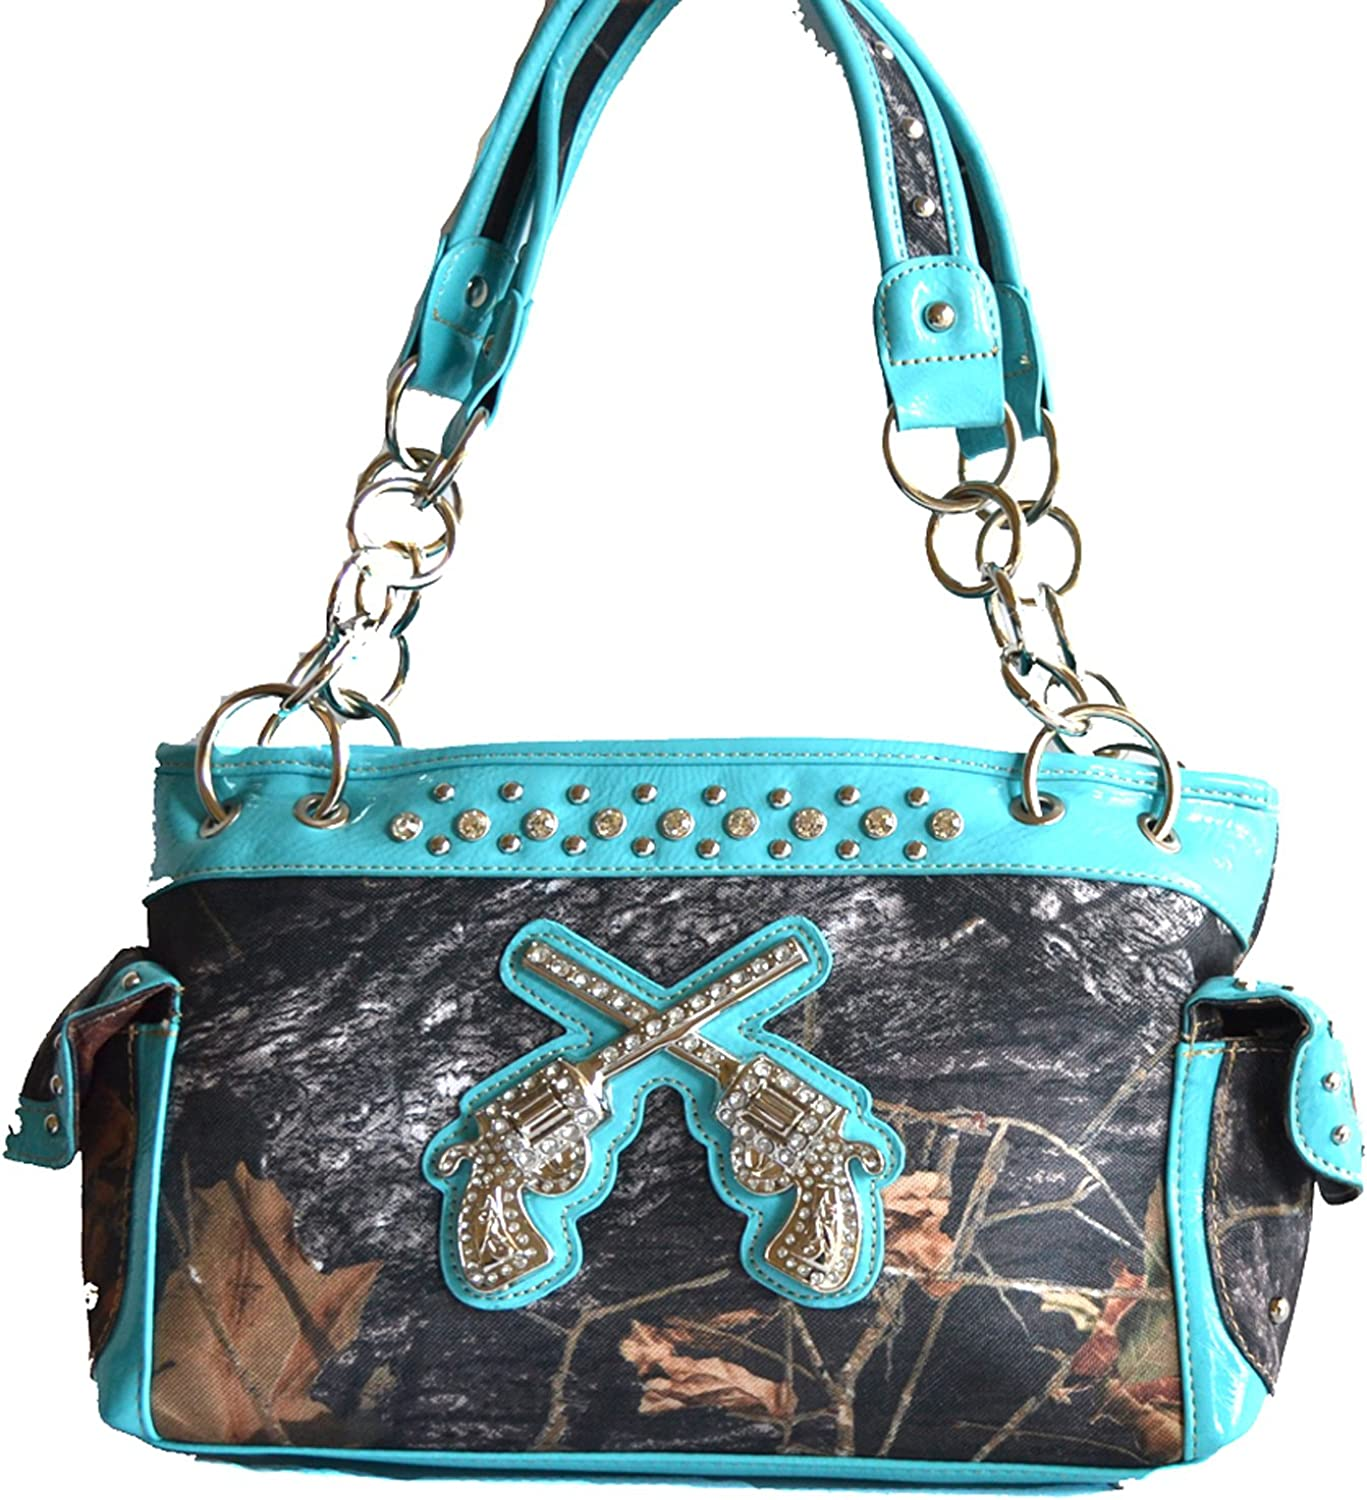 ORANGE RHINESTONE MOSSY CAMO LOOK PISTOLS SHOULDER HANDBAG GUN WESTERN PURSE